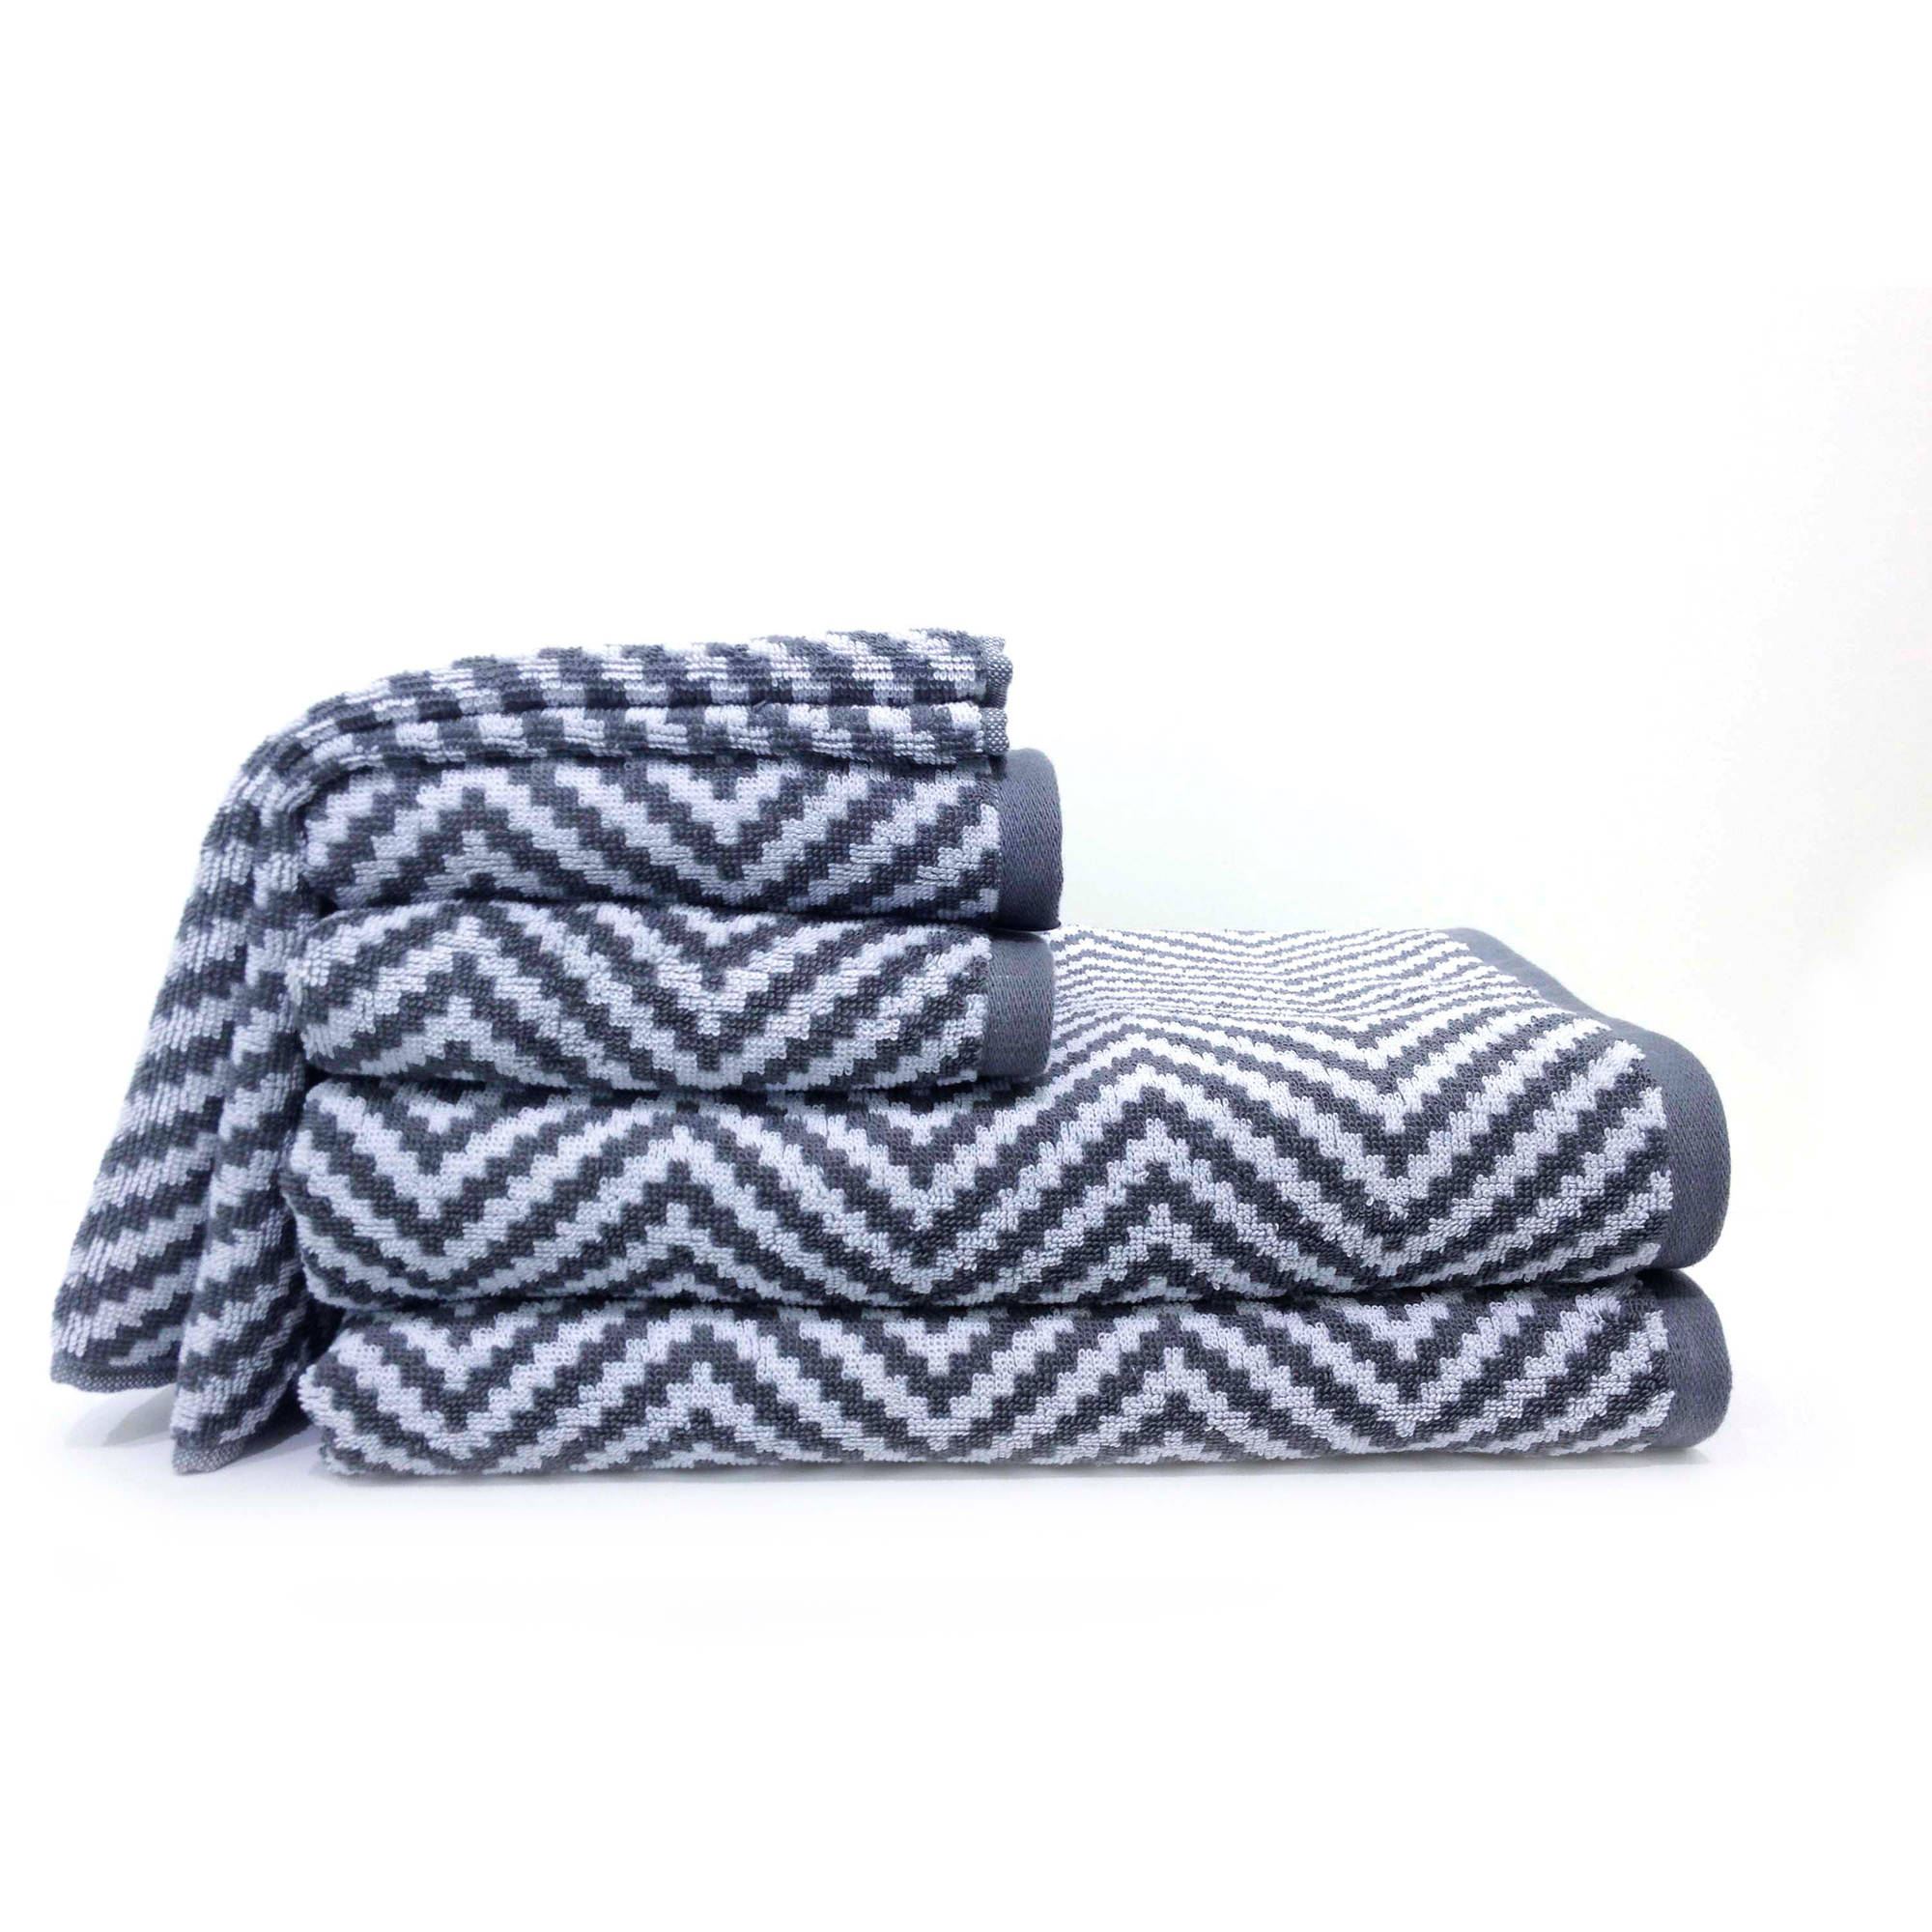 Better Homes and Gardens Chevron Bath Towel Collection Walmartcom